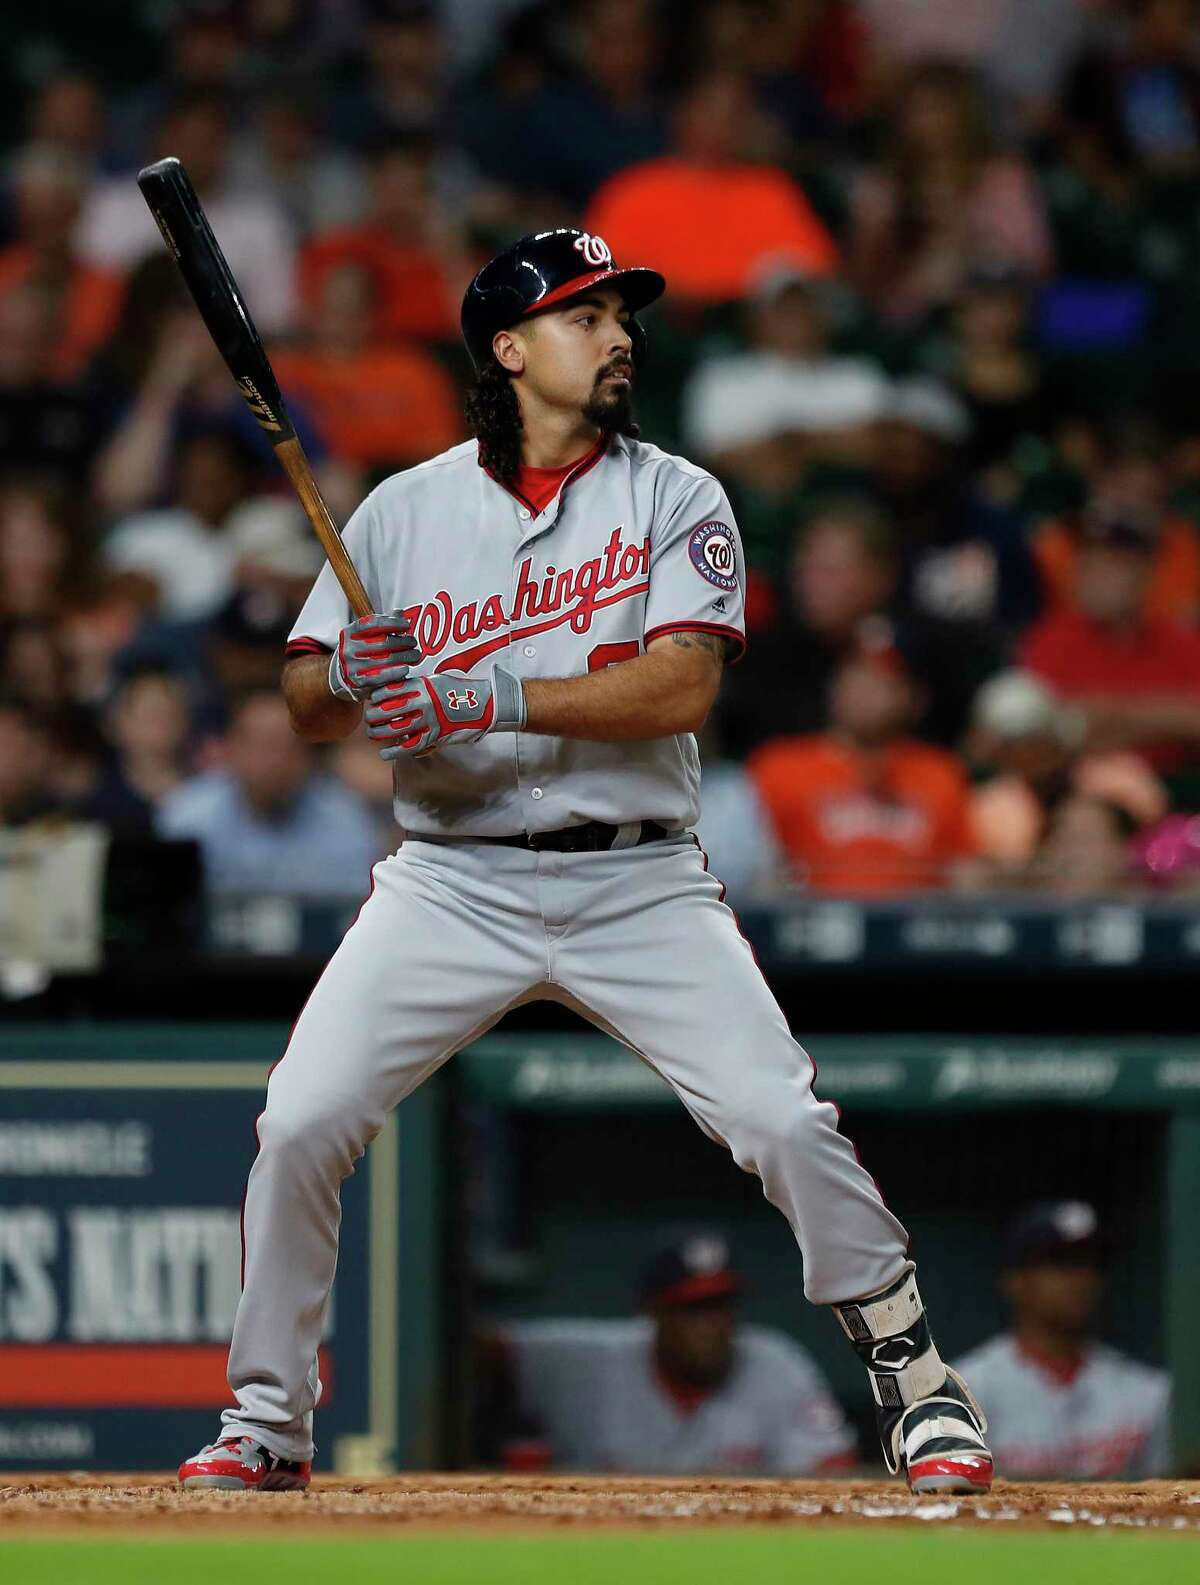 Former Rice University player Washington Nationals Anthony Rendon (6) at bat in the fourth inning of an MLB game at Minute Maid Park, Tuesday, Aug. 22, 2017, in Houston.